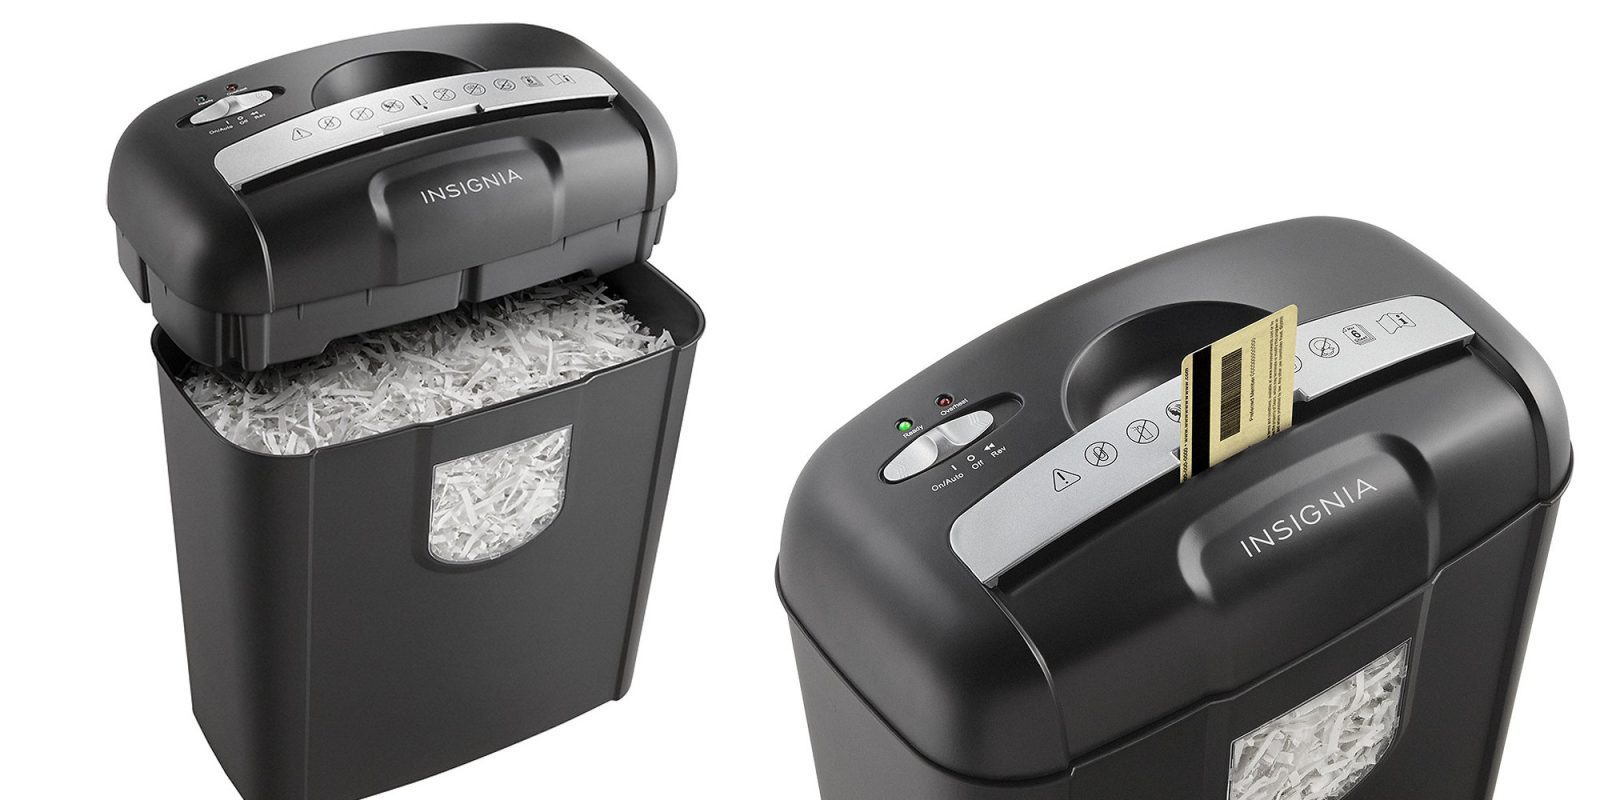 Paper/credit card shredders now up to $50 off for today only, deals from $24